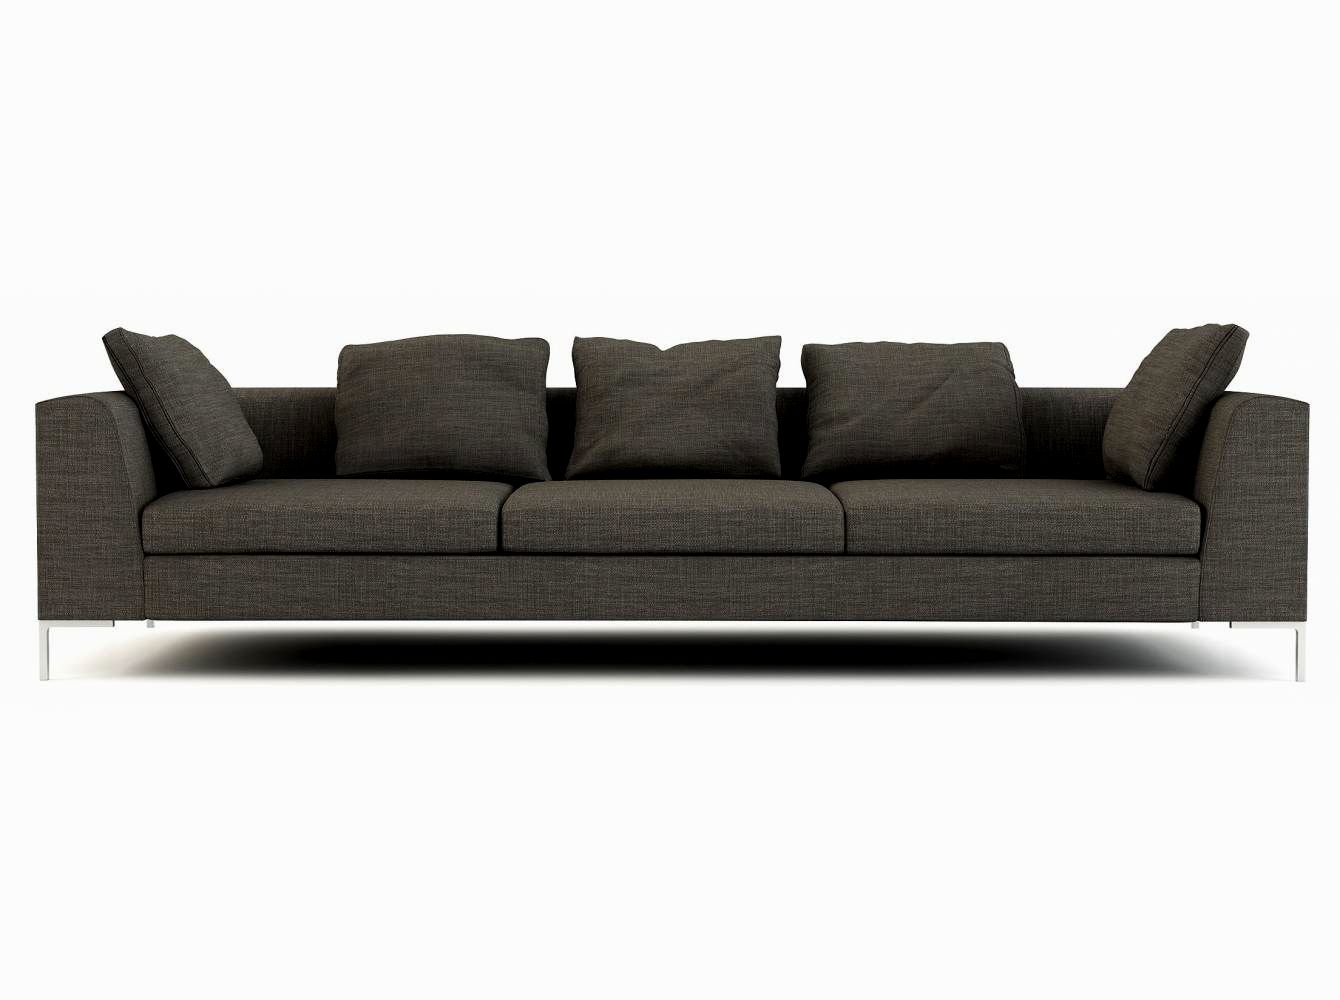 New Macy S Furniture Sofa Image Inspirational Picture